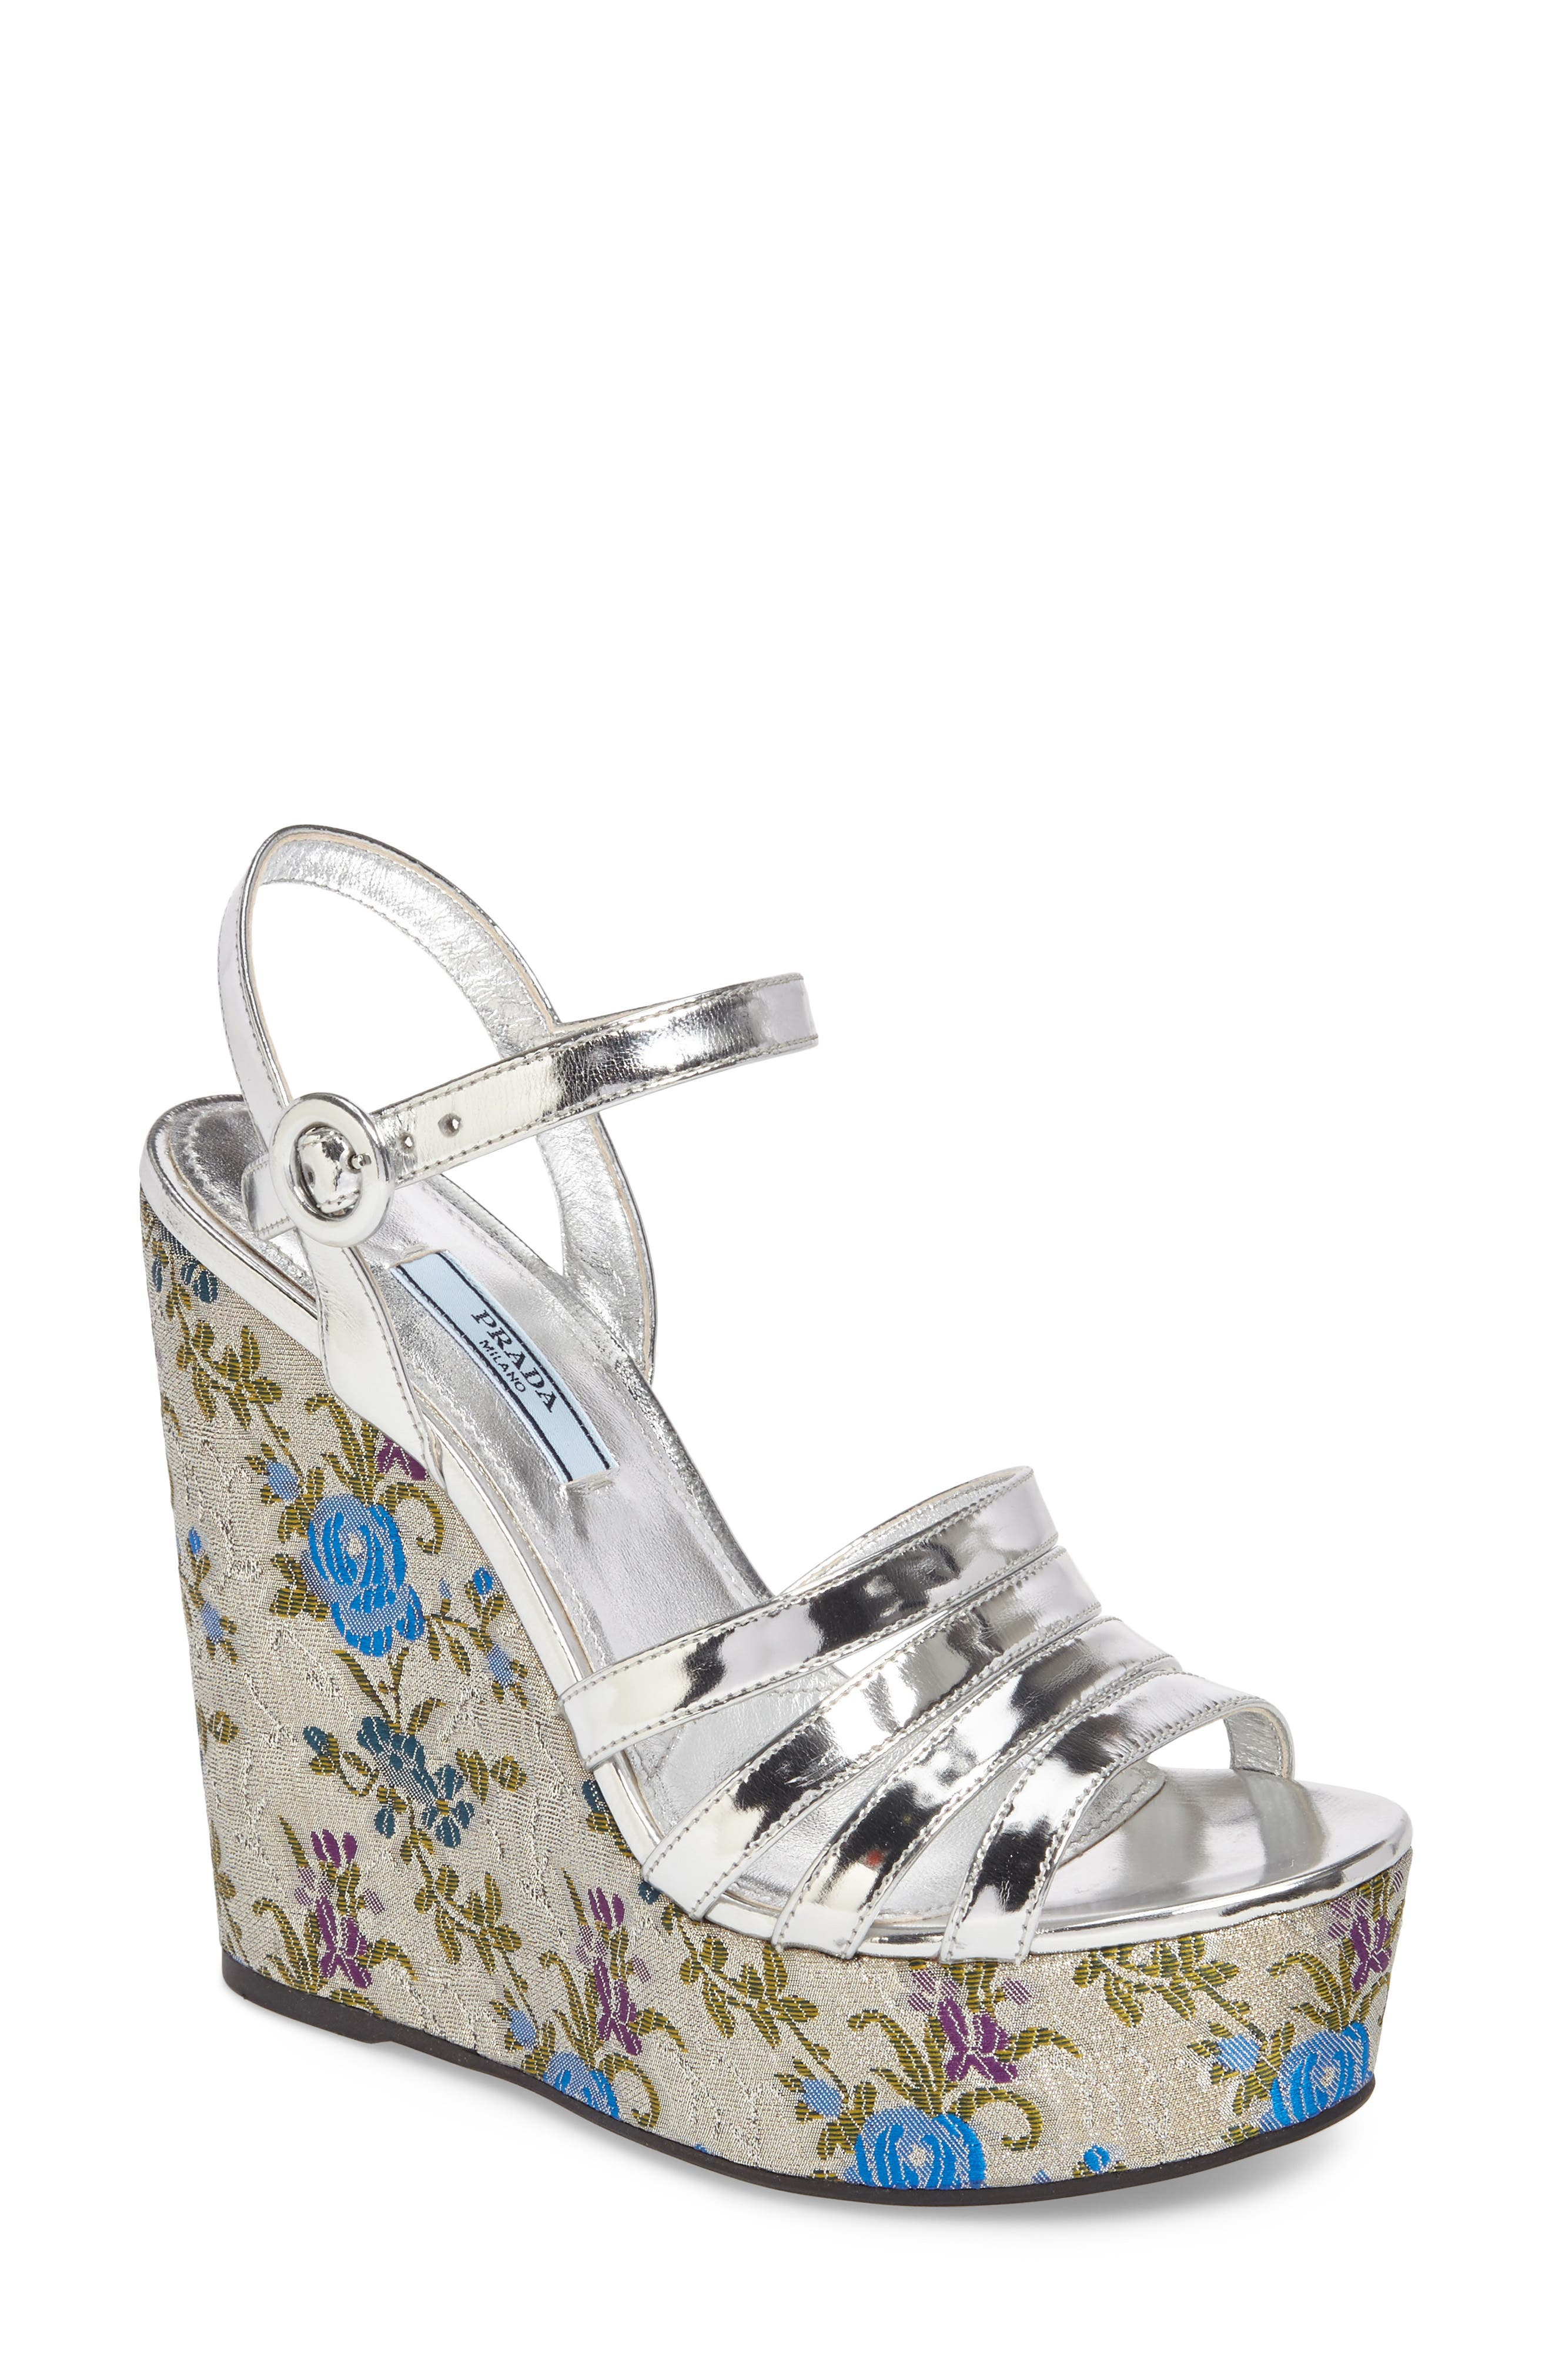 Floral Wedge Platform Sandals,                         Main,                         color, 041